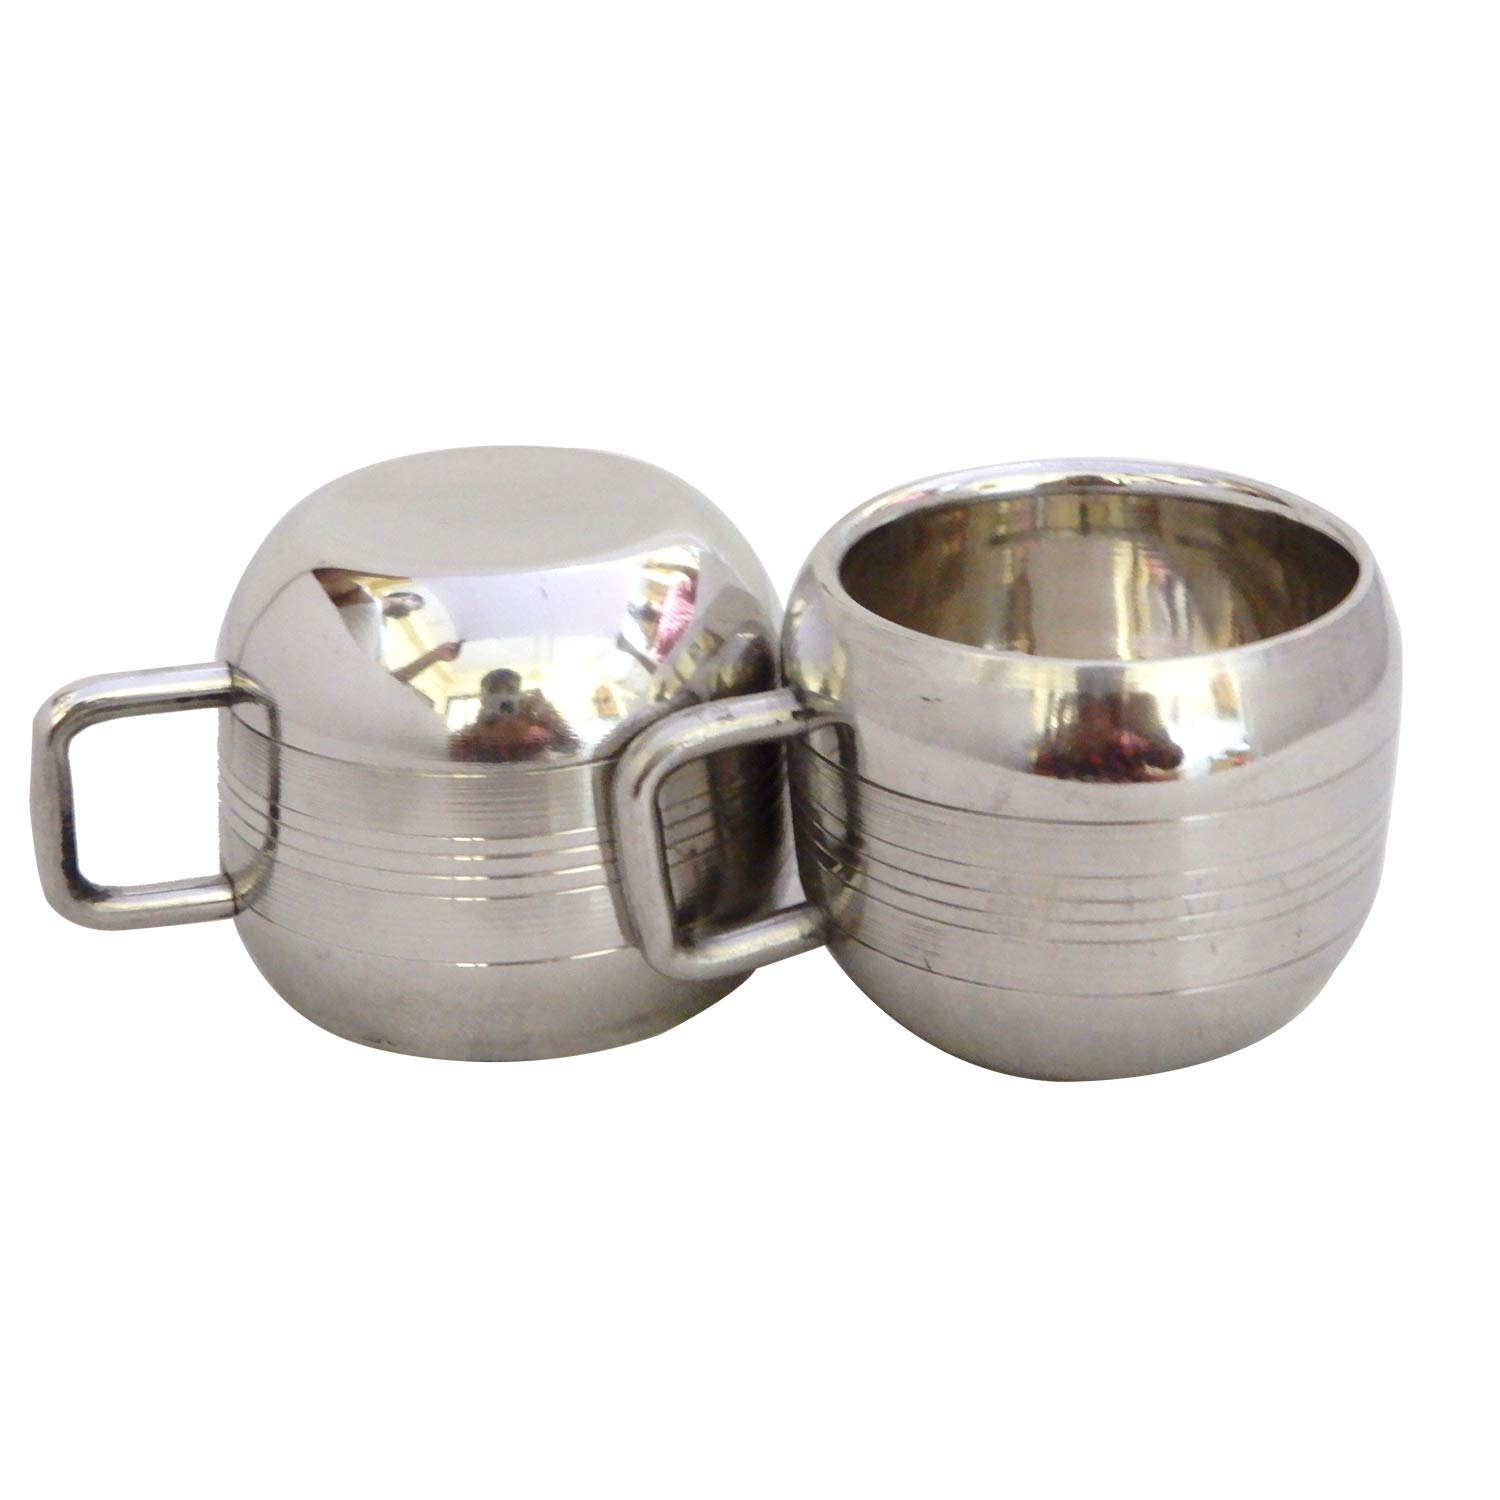 Double Walled Stainless Steel Coffee and Tea Mug,Coffee /& Tea Cup Mug - Set of 2,Valentine Day Gifts Silver Insulated Cups with Handles Keep Drinks Hot or Cold Longer